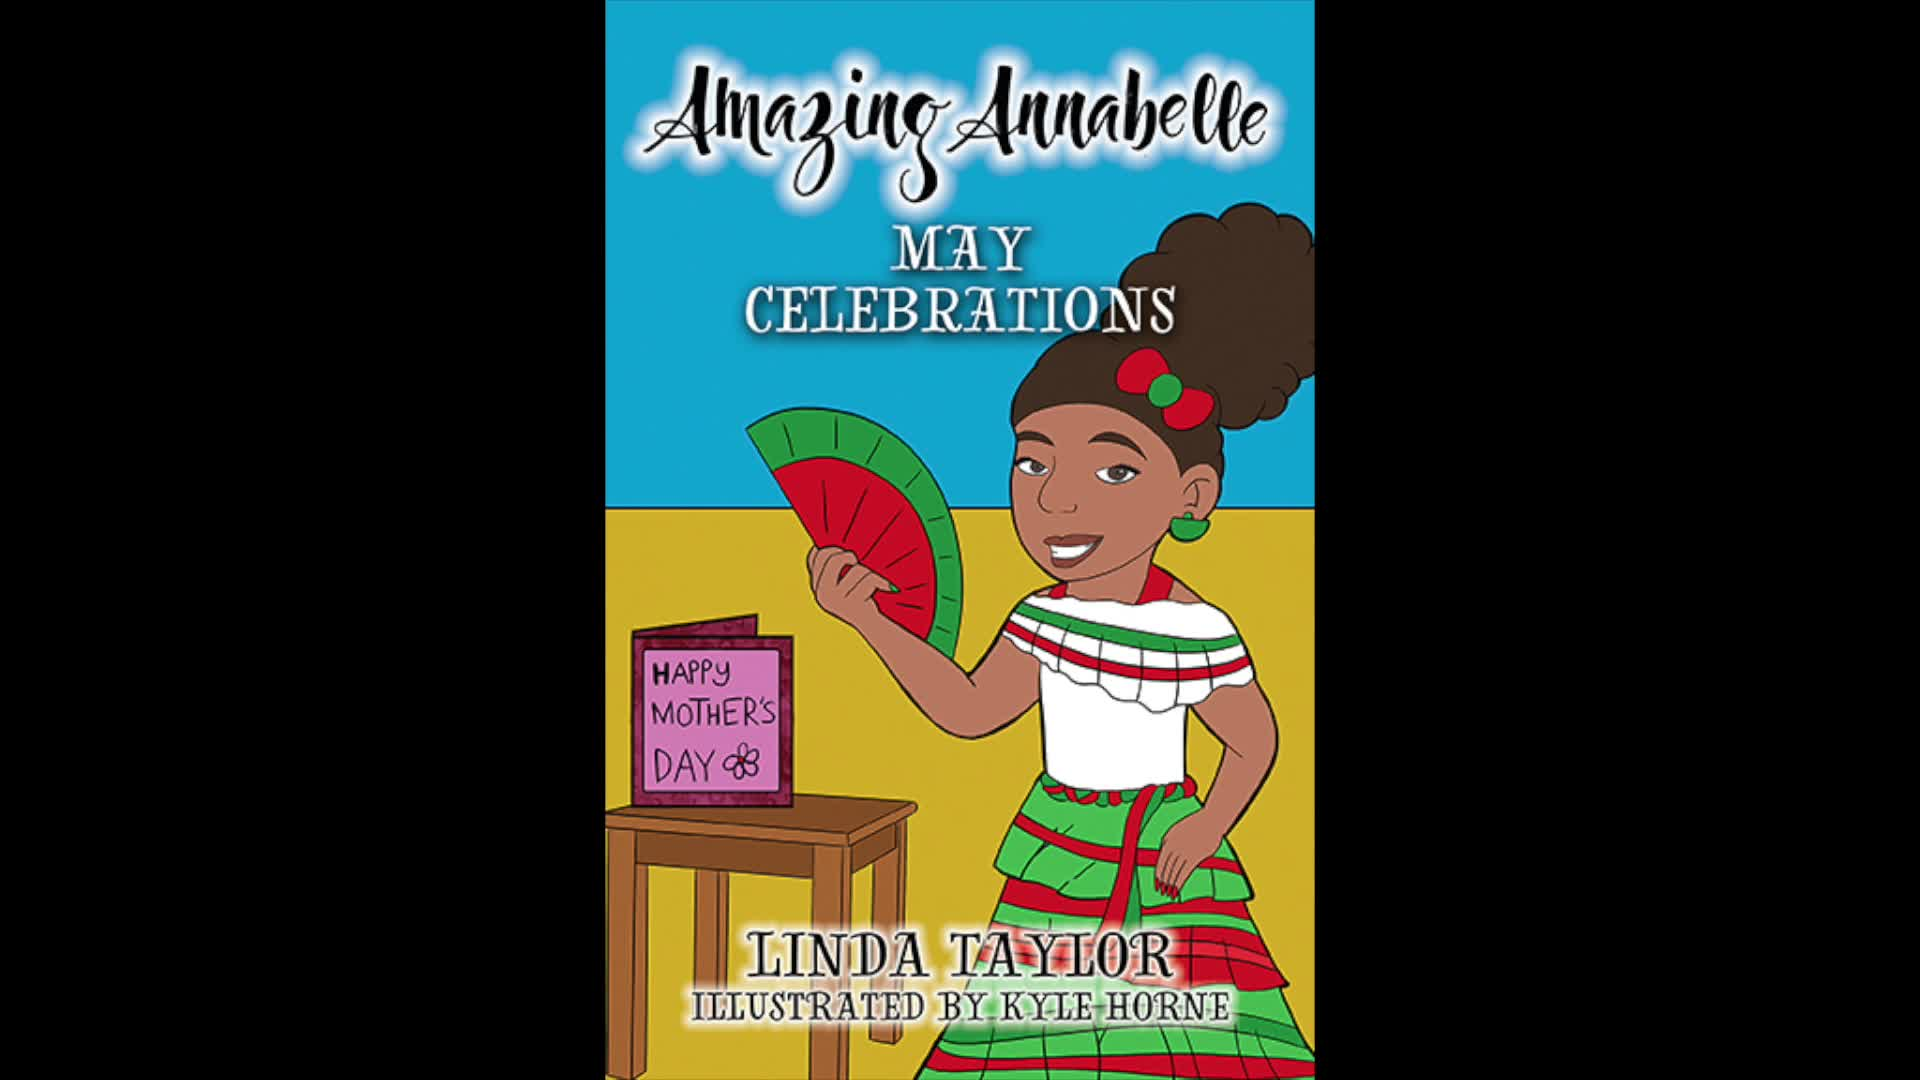 Amazing Annabelle May Celebrations Chapter 7